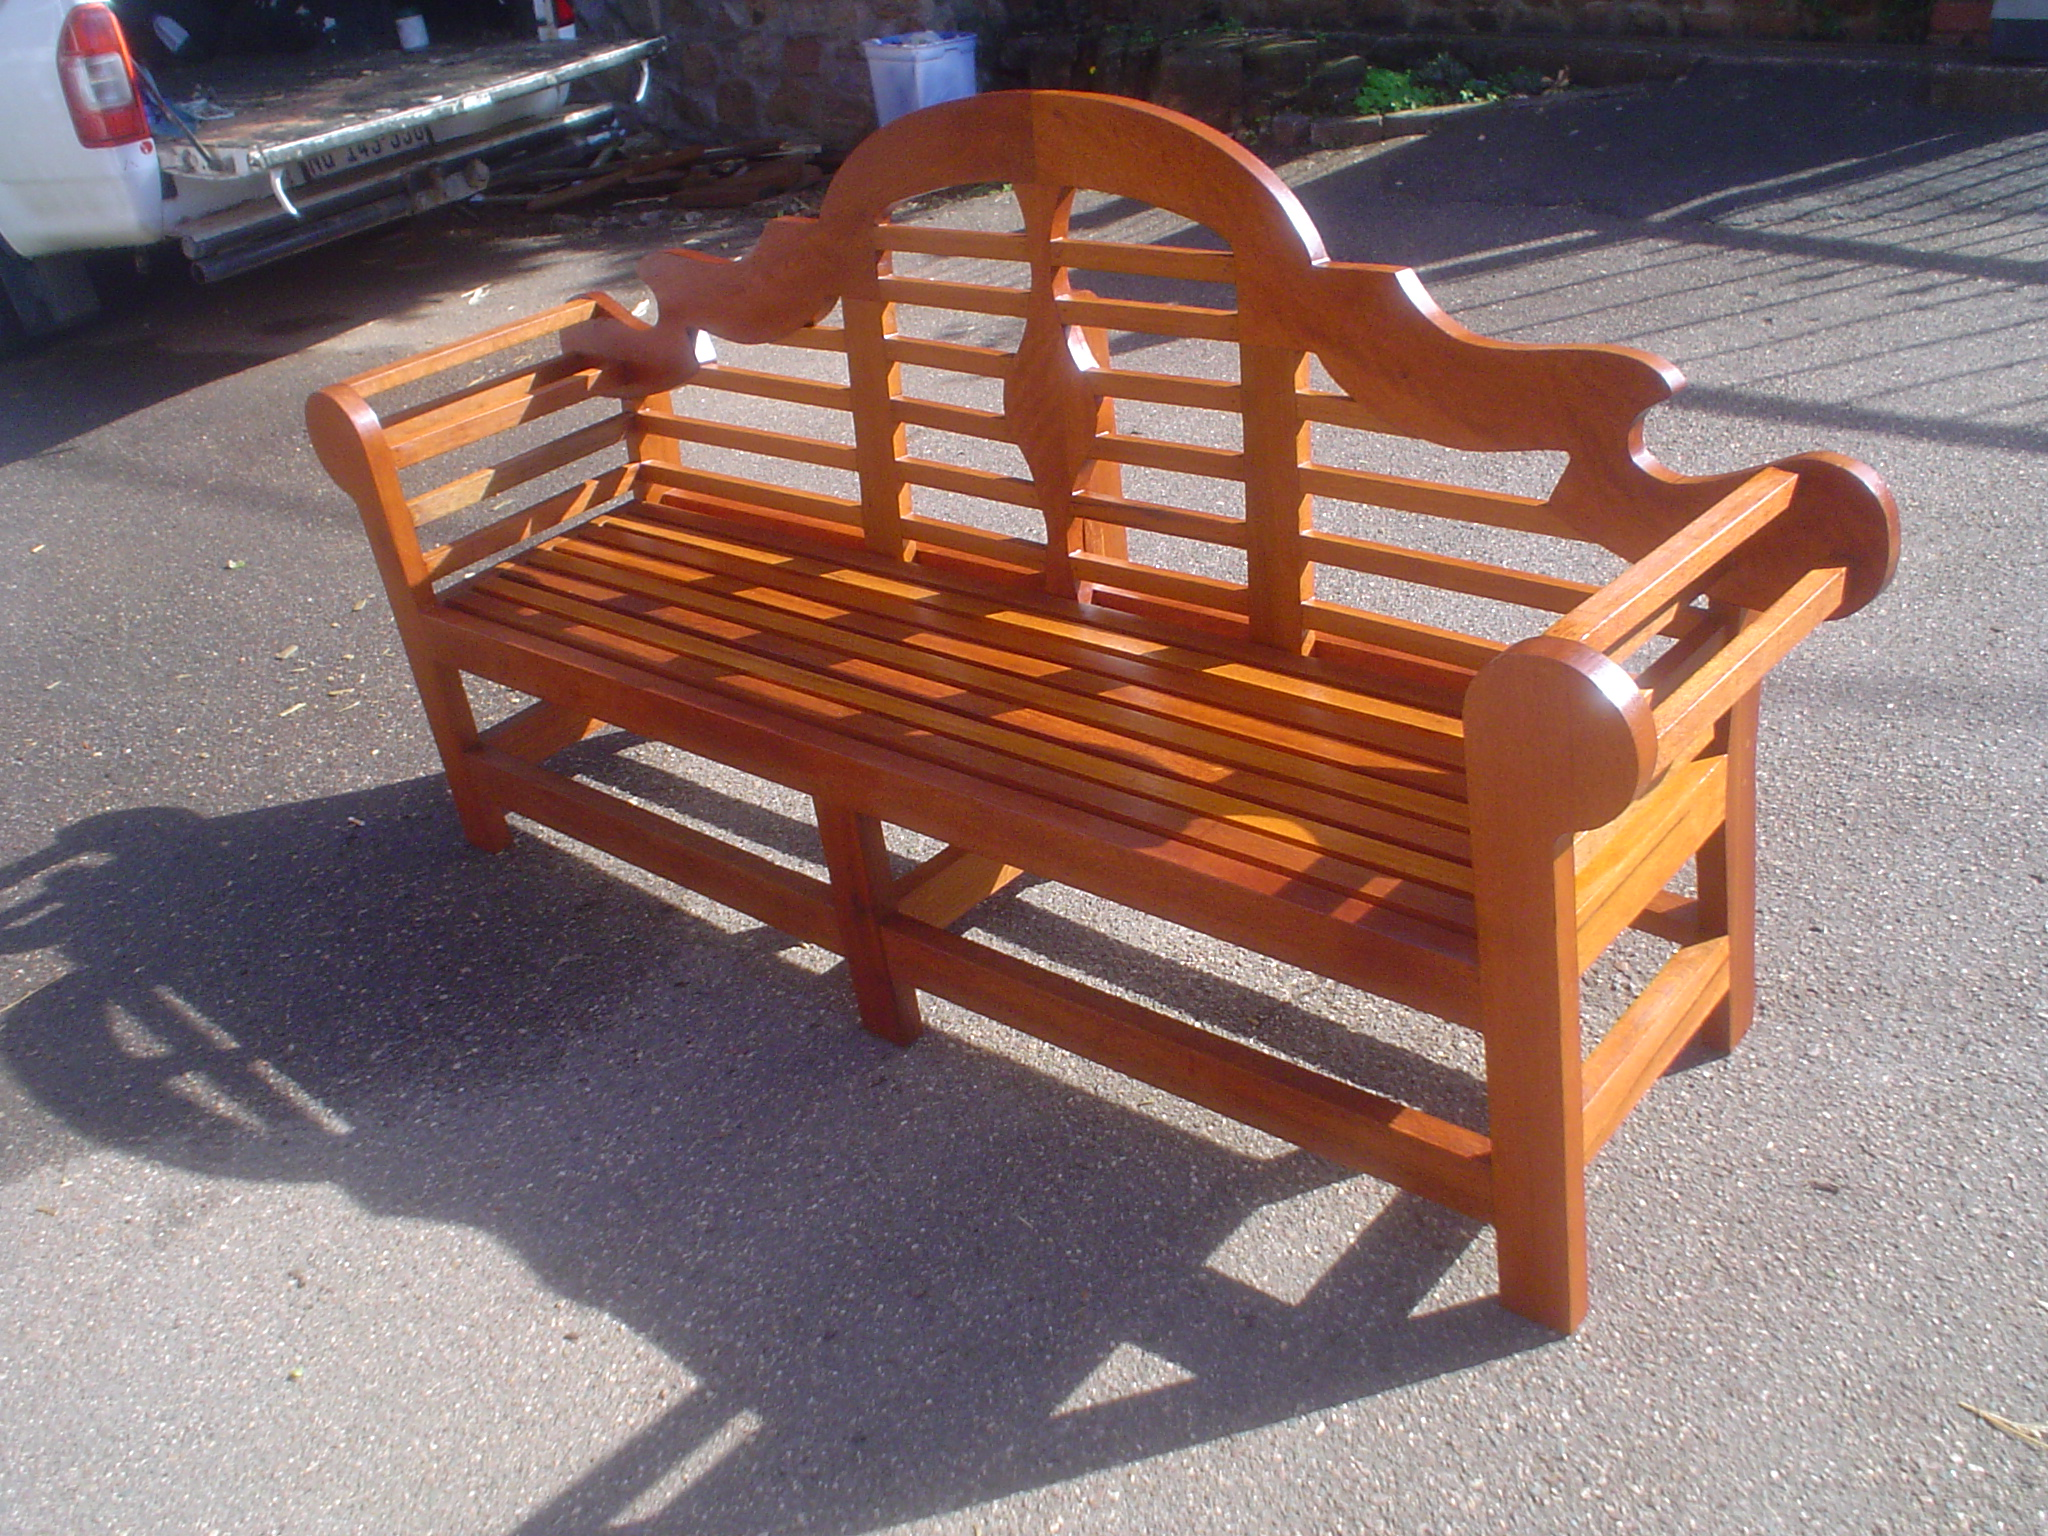 Pictures Of Sundecks Stairs And Benches: Lutyens Bench – Outdoor Garden Furniture